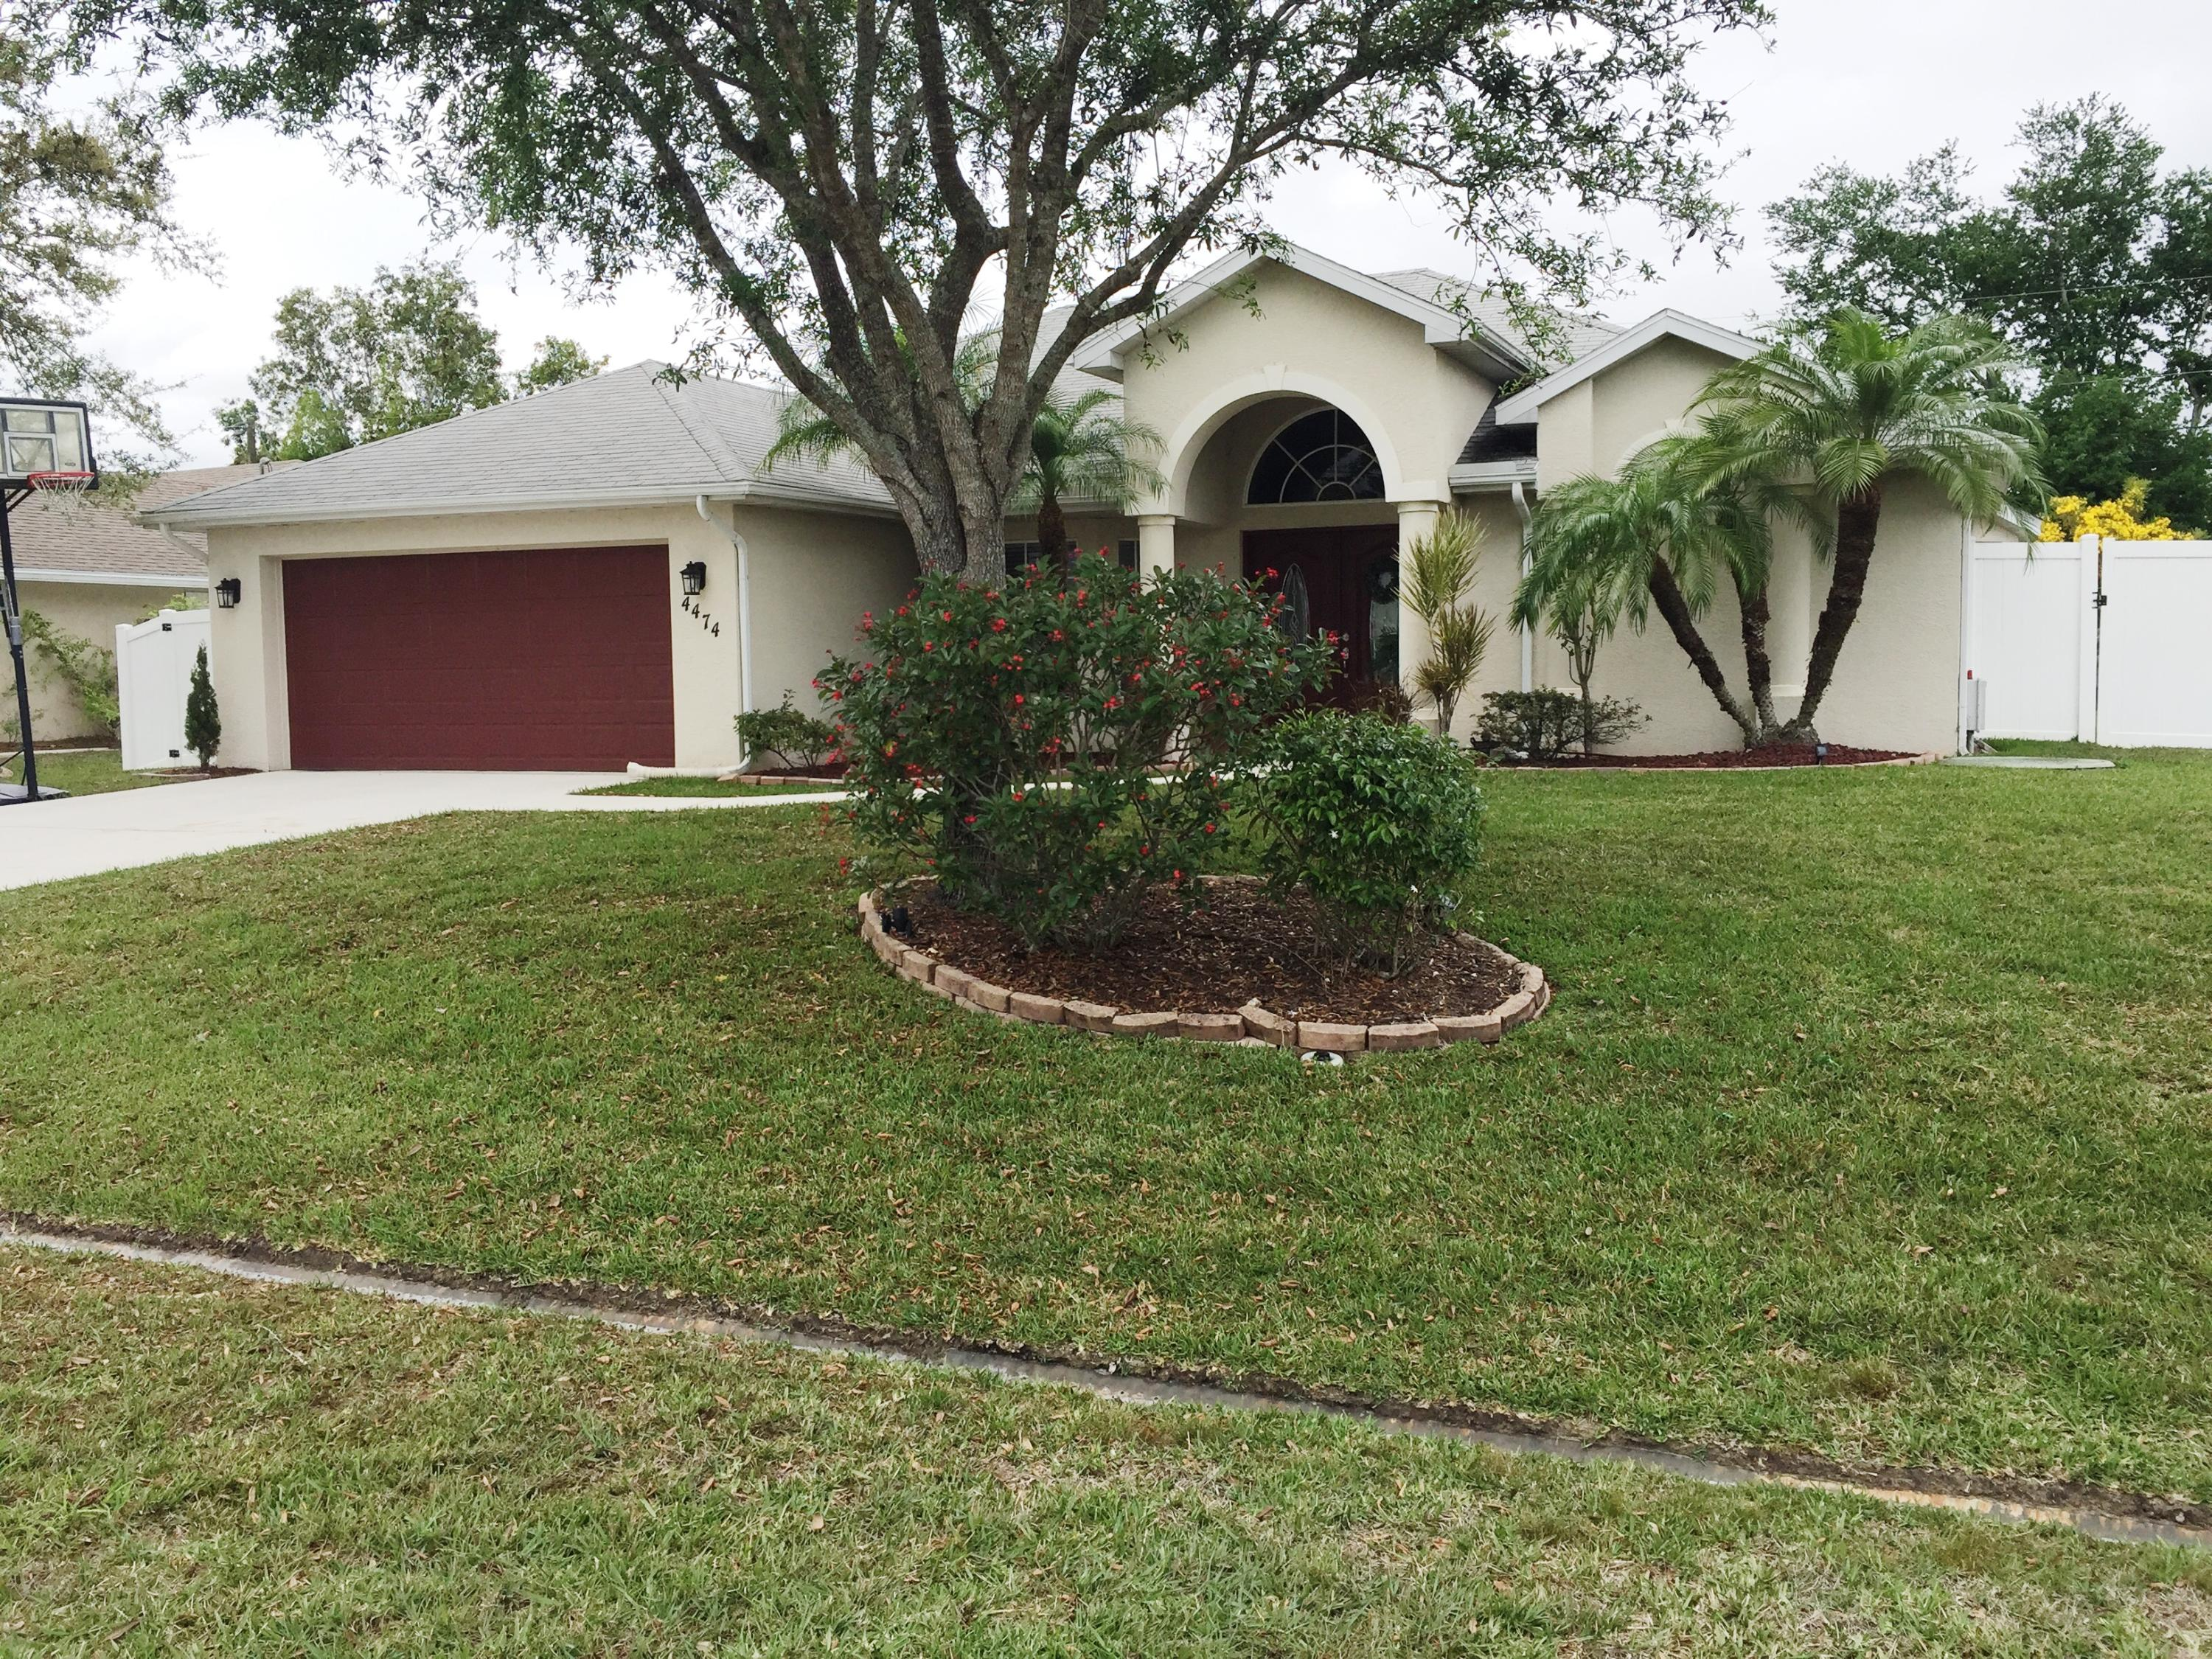 4474 NW North Macedo Boulevard 34983 - One of Port Saint Lucie Homes for Sale